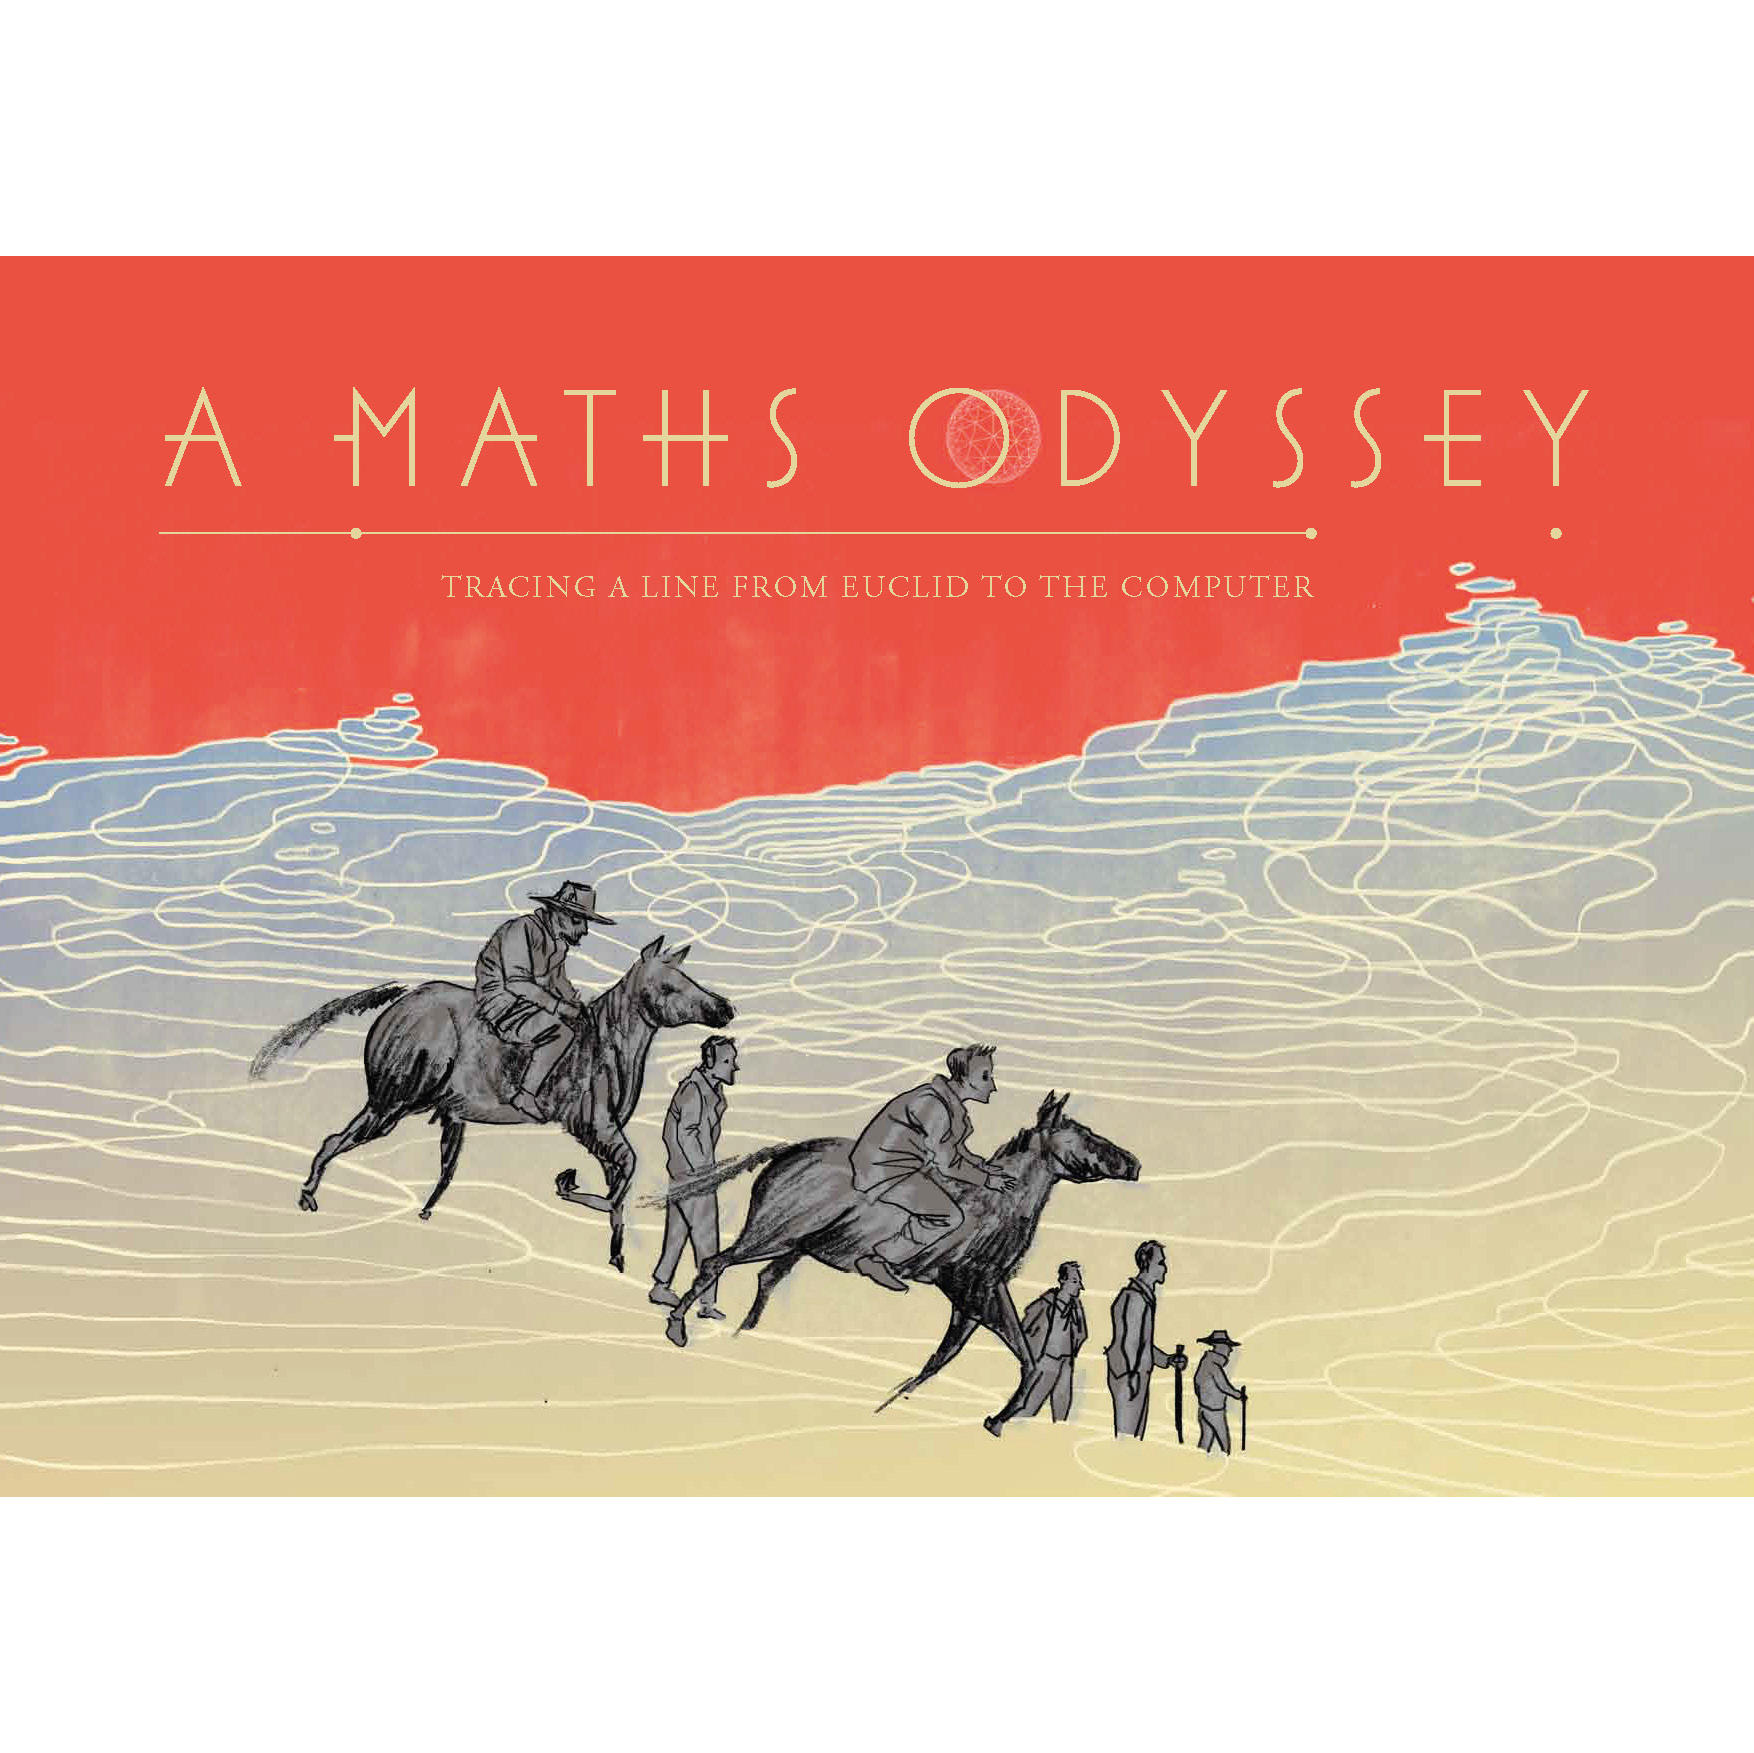 A Maths Odyssey – Museum of Applied Arts and Sciences